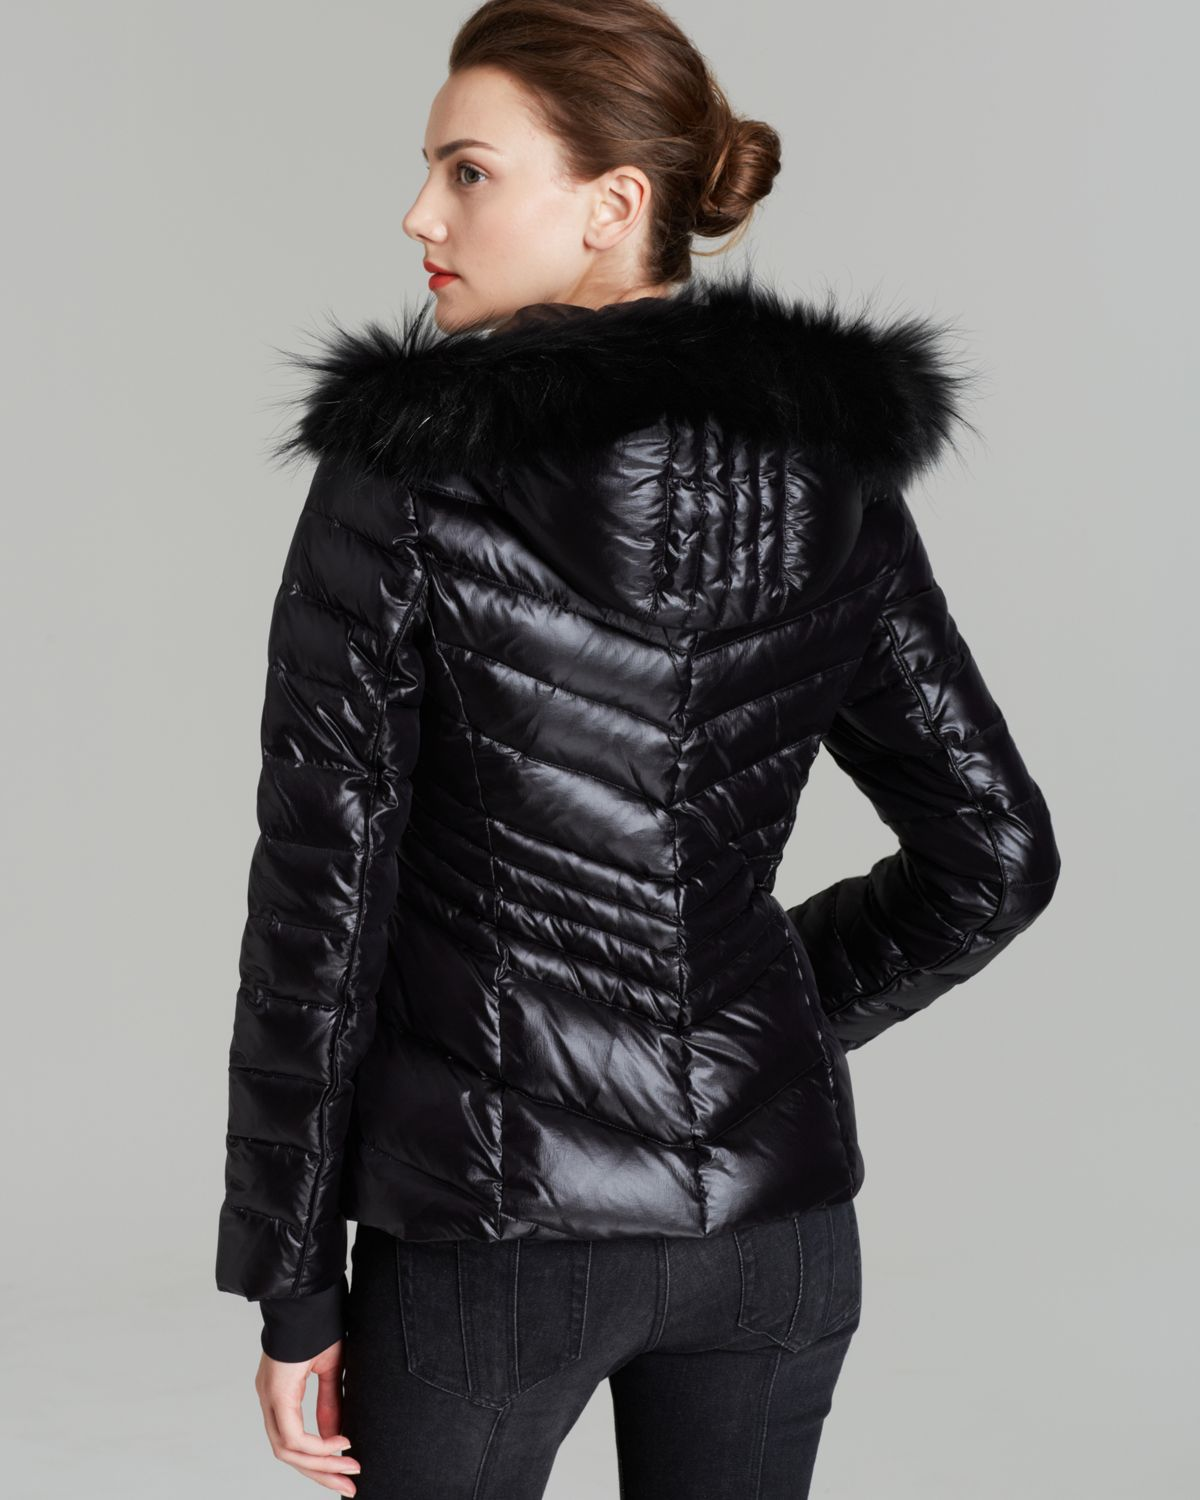 AliExpress carries many down coat with real fur hood related products, including feather coat, women down jacket, winter women jacket, women jacket, woman down jacket, parka women, down, white parka, down jacket with fox fur.